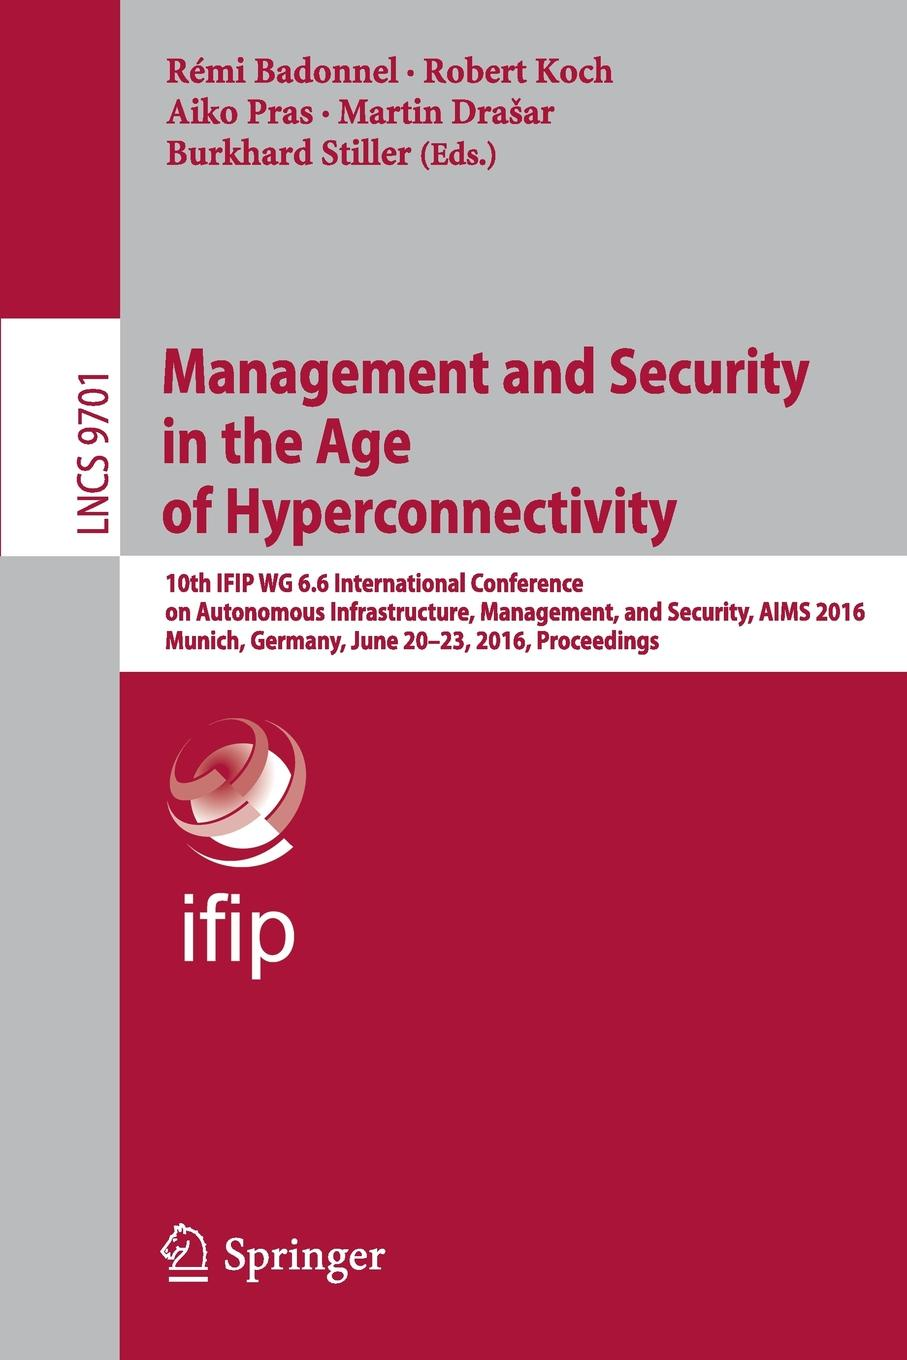 Management and Security in the Age of Hyperconnectivity. 10th IFIP WG 6.6 International Conference on Autonomous Infrastructure, Management, and Security, AIMS 2016, Munich, Germany, June 20-23, 2016, Proceedings nicole detraz international security and gender